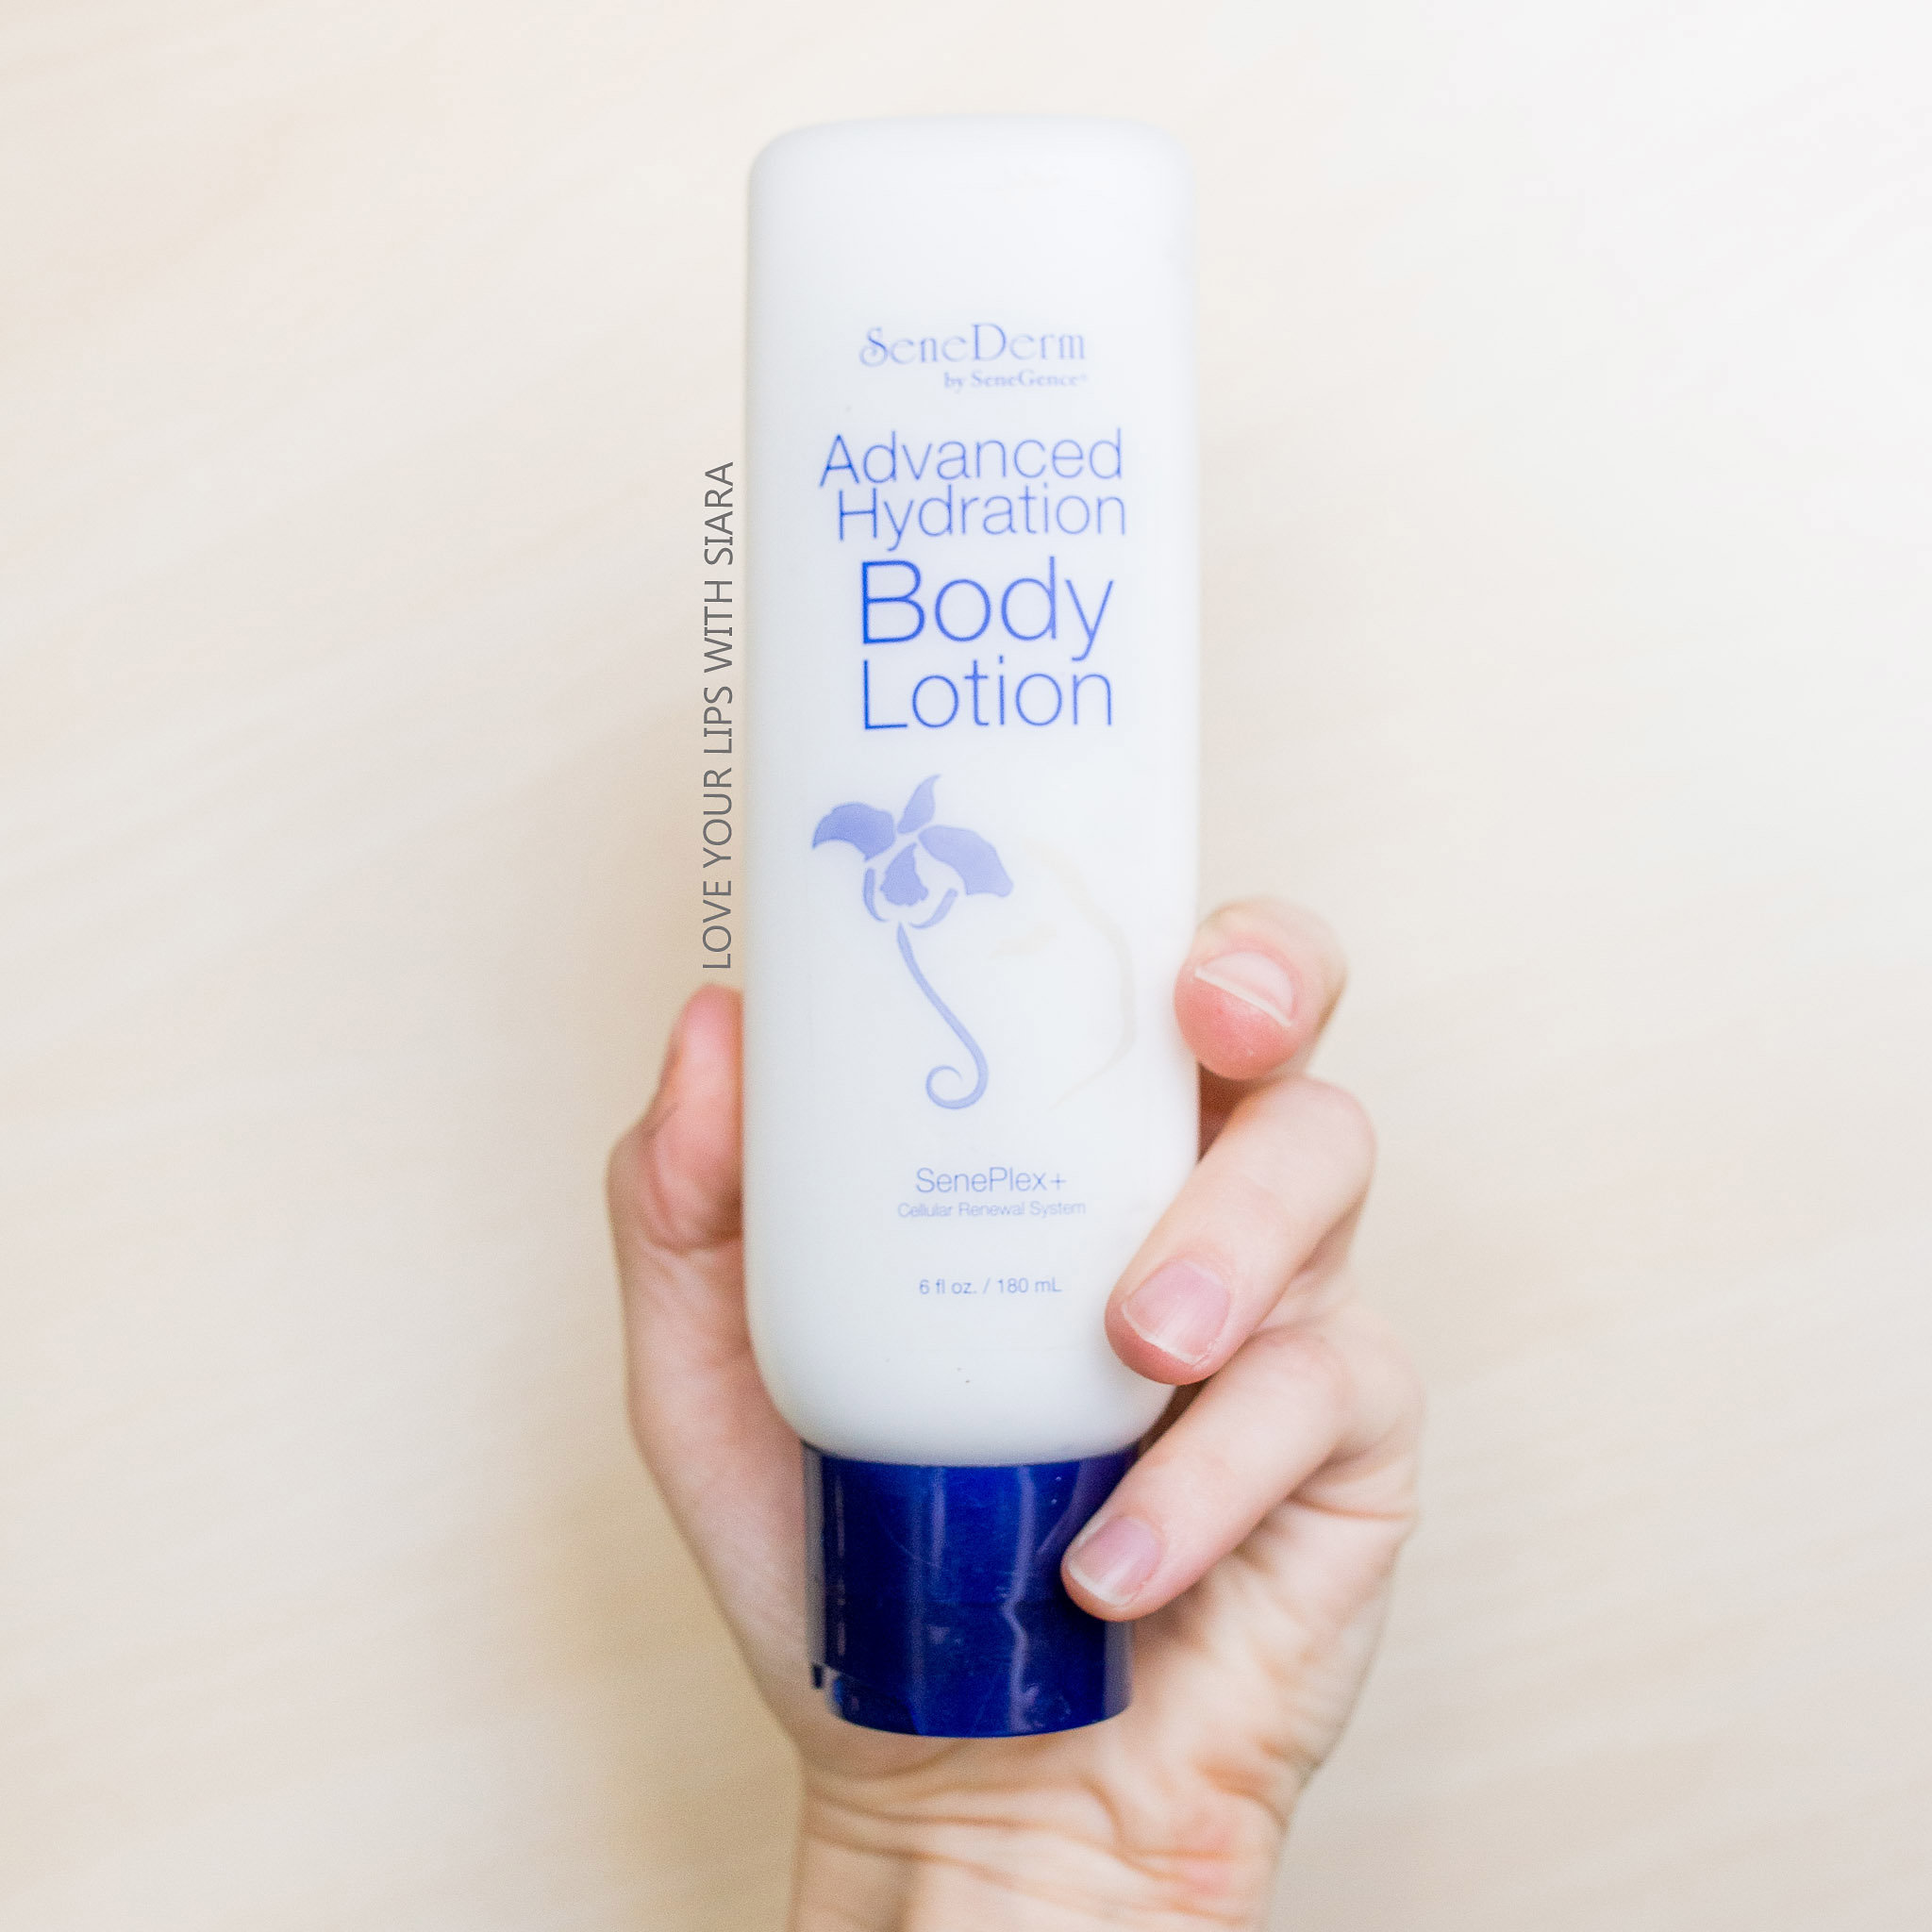 Advanced hydration body lotion - with SenePlex+